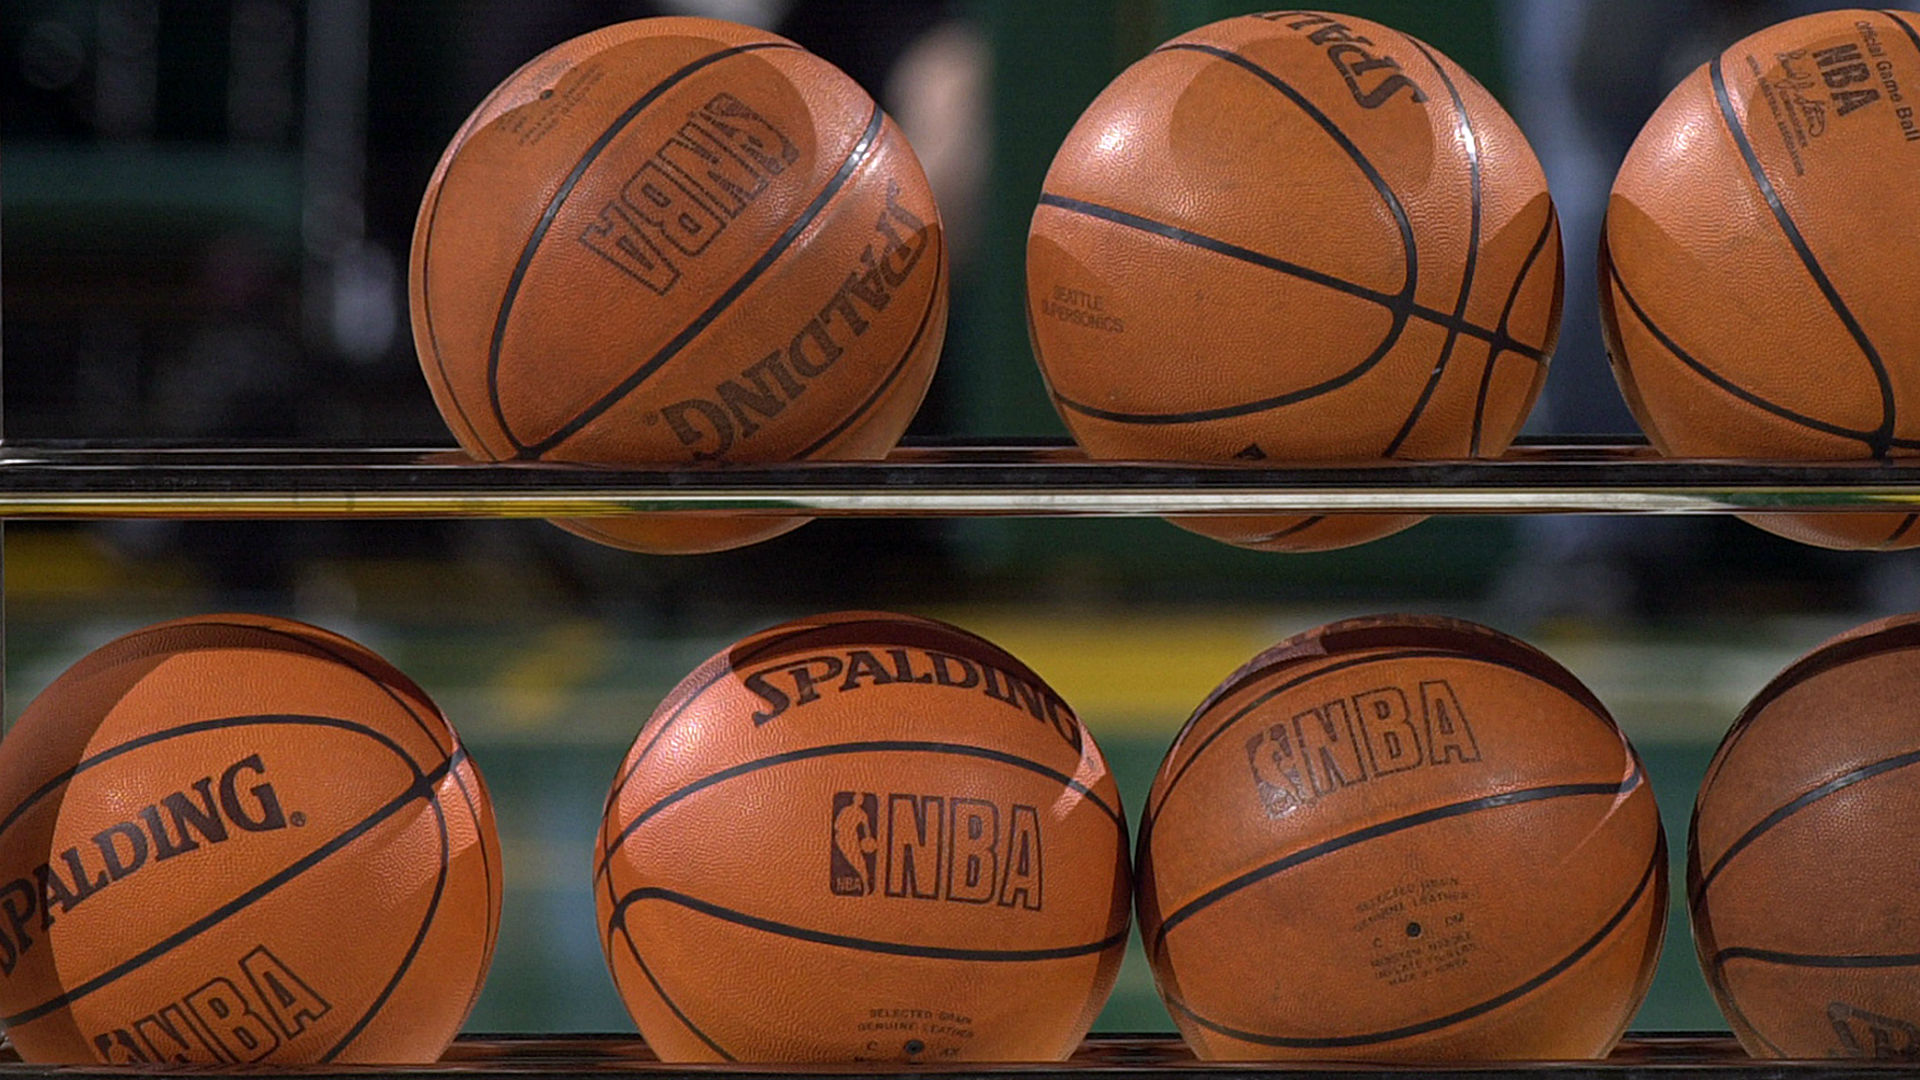 National Basketball Association will likely change shot clock reset rules